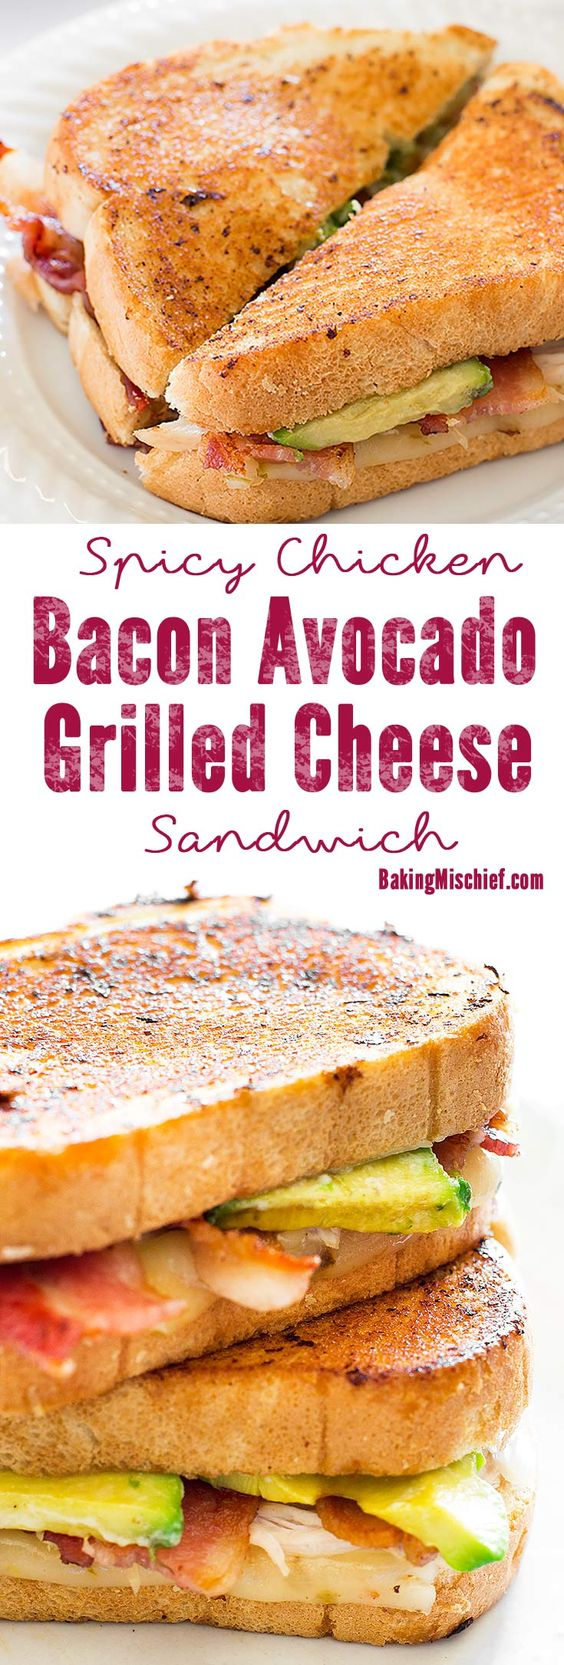 ... grilled bacon avocado avocado chicken chicken bacon grilled cheese